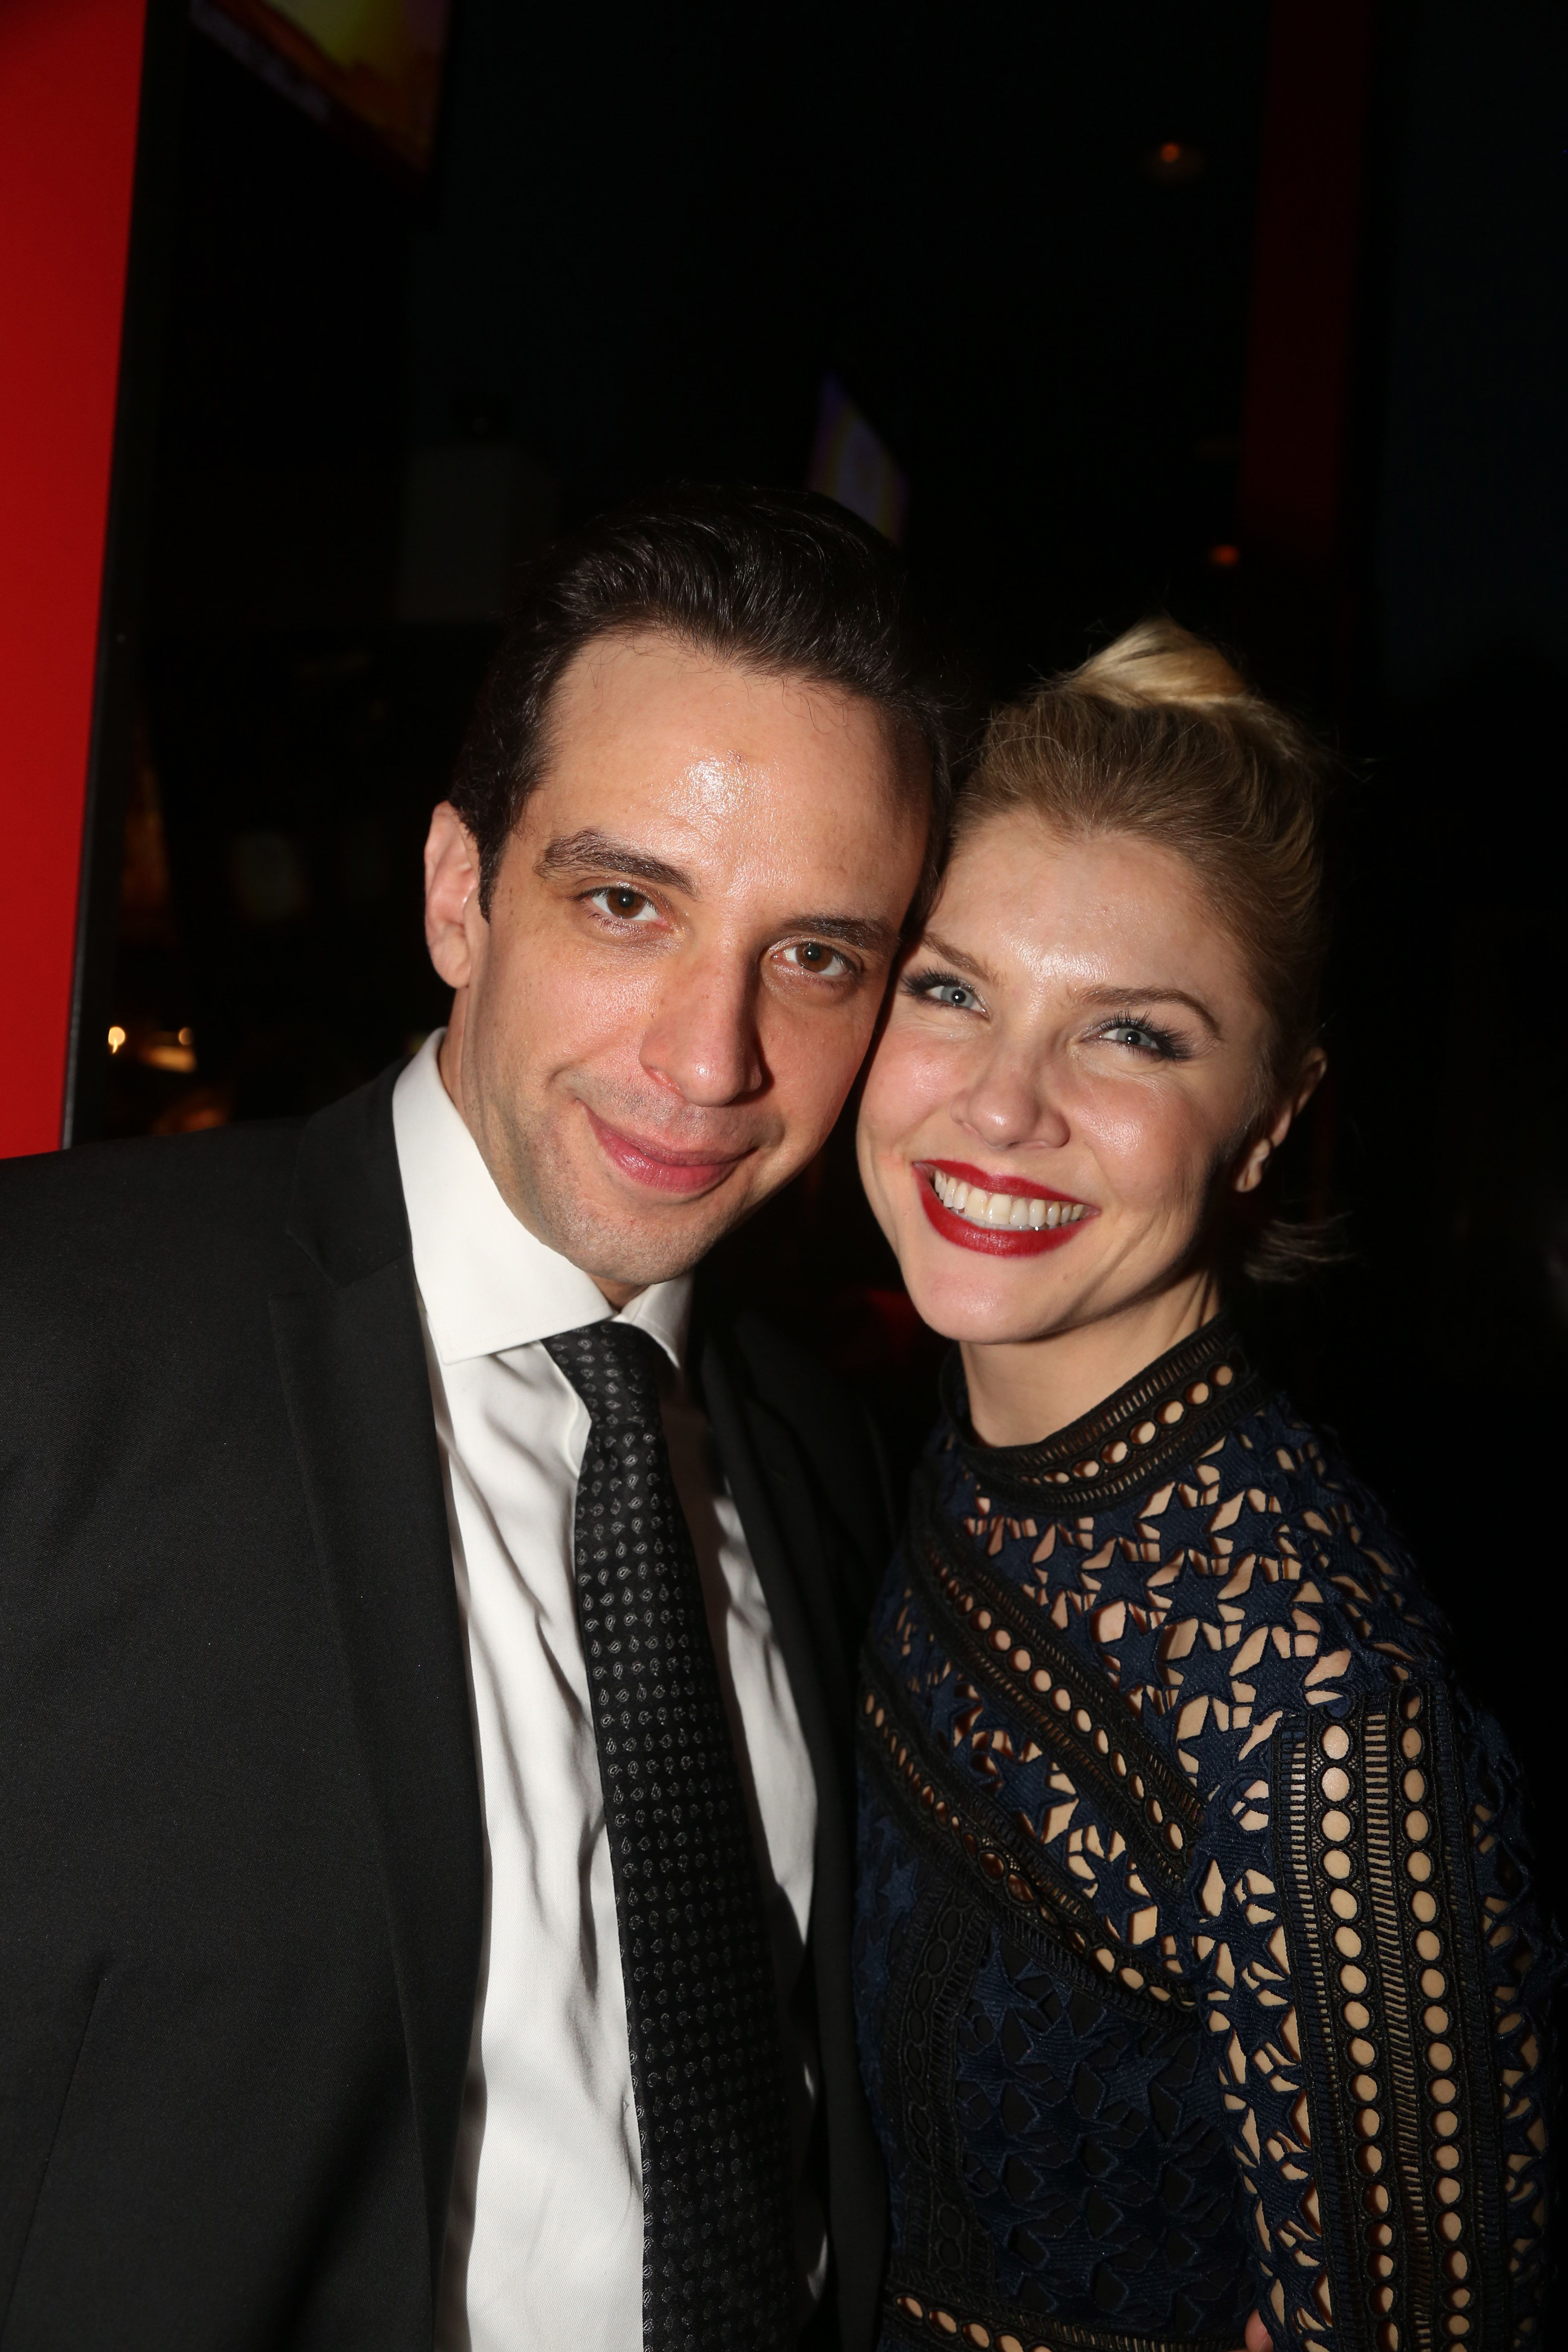 Nick Cordero and Amanda Kloots pose at the after party for Manhattan Concert Production's Broadway Series on February 19, 2017 in New York City | Photo: Getty Images